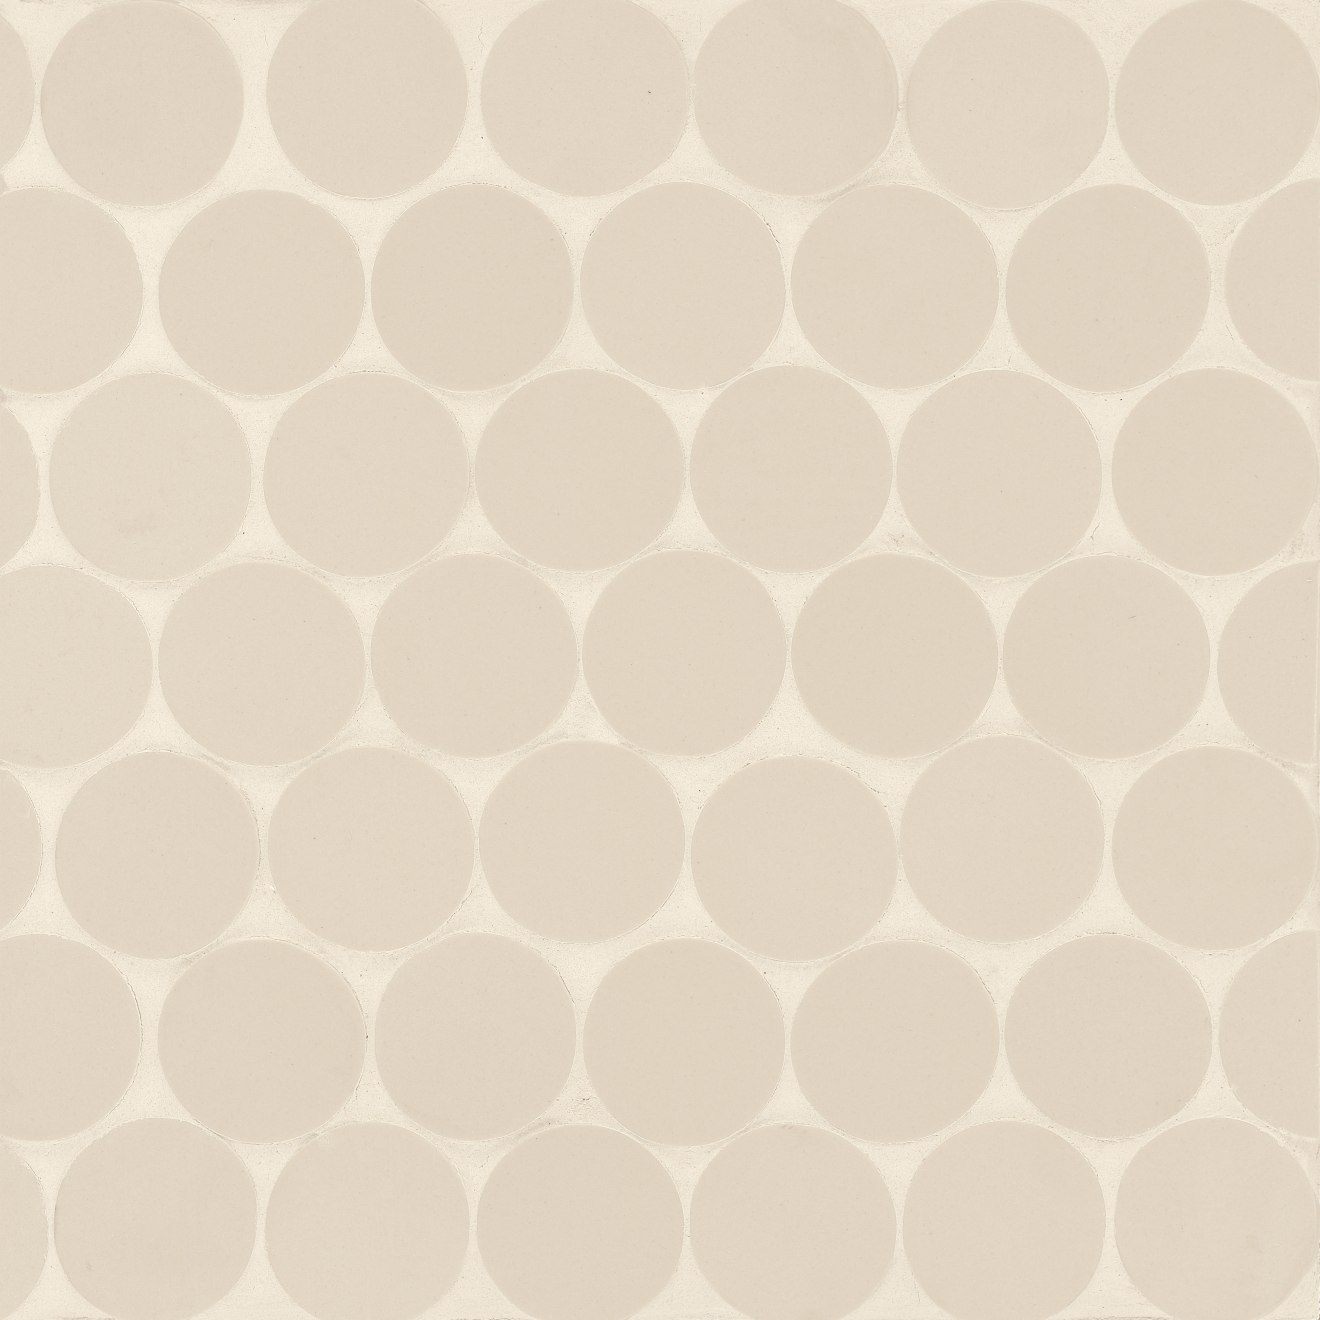 "Makoto 2"" Round Matte Porcelain Floor and Wall Mosaic in Tatami Beige"